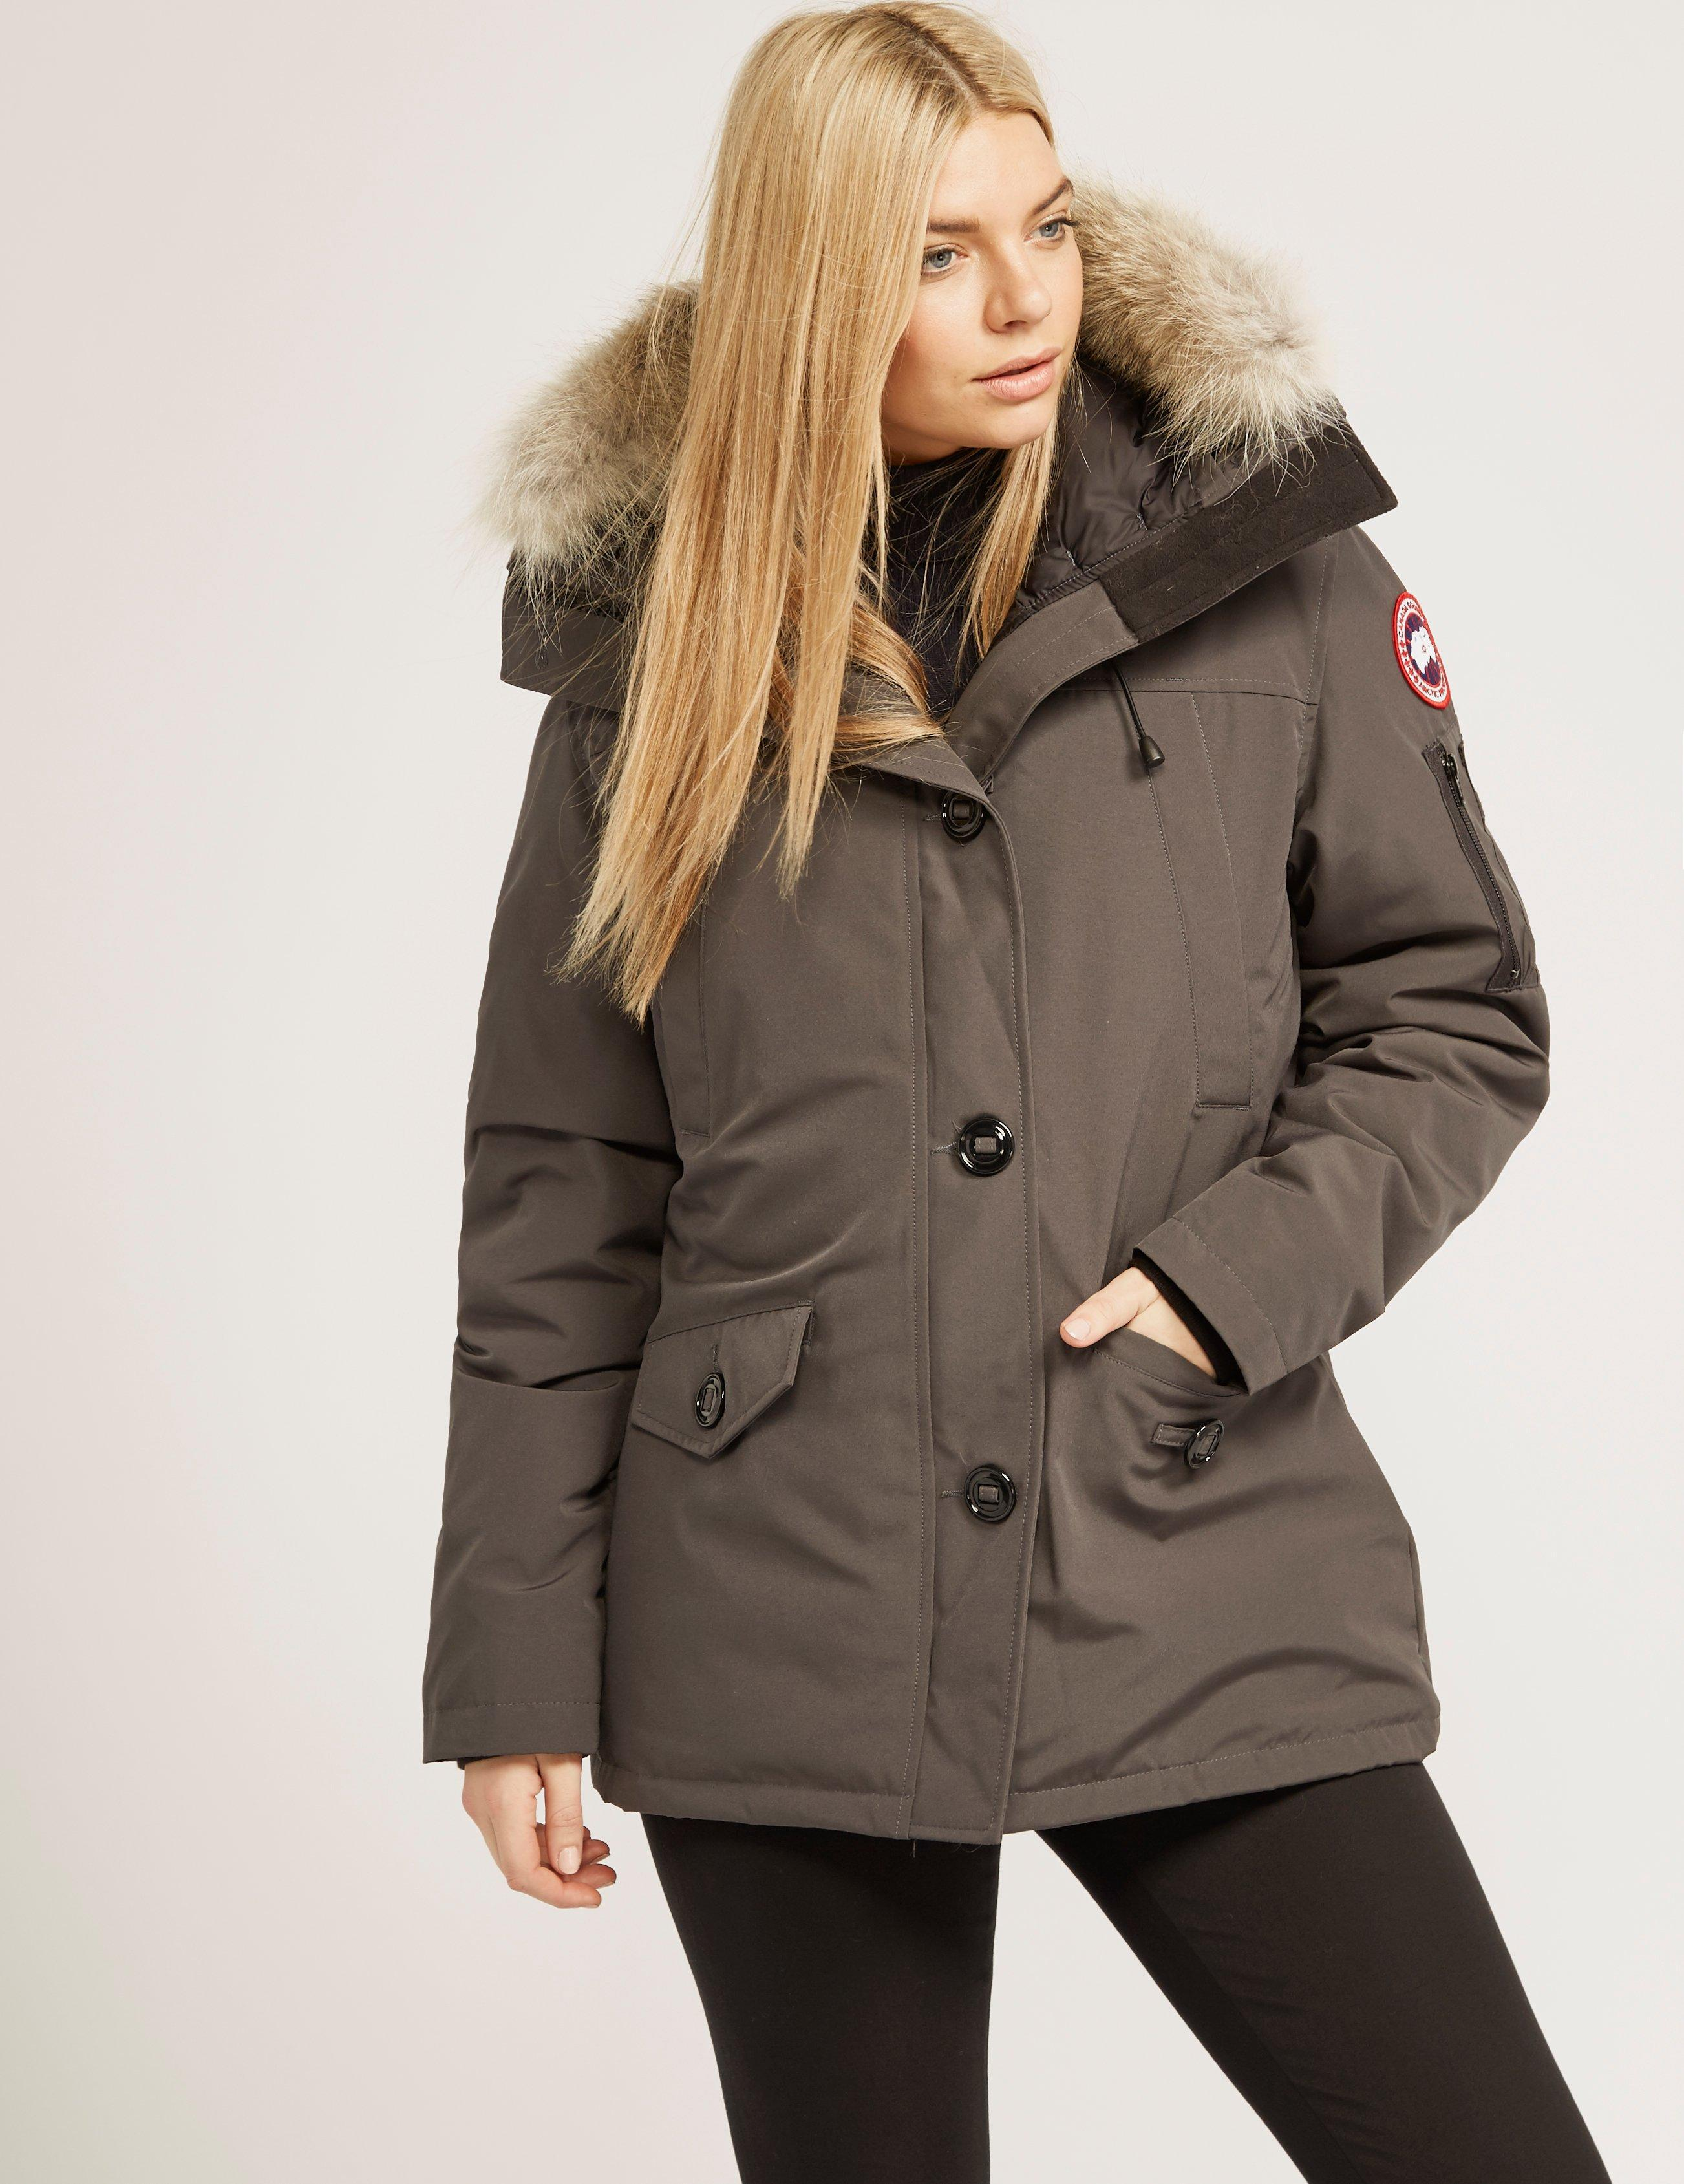 cf964dfd8b4c Canada Goose Womens Montebello Padded Parka Jacket Grey in Gray - Lyst